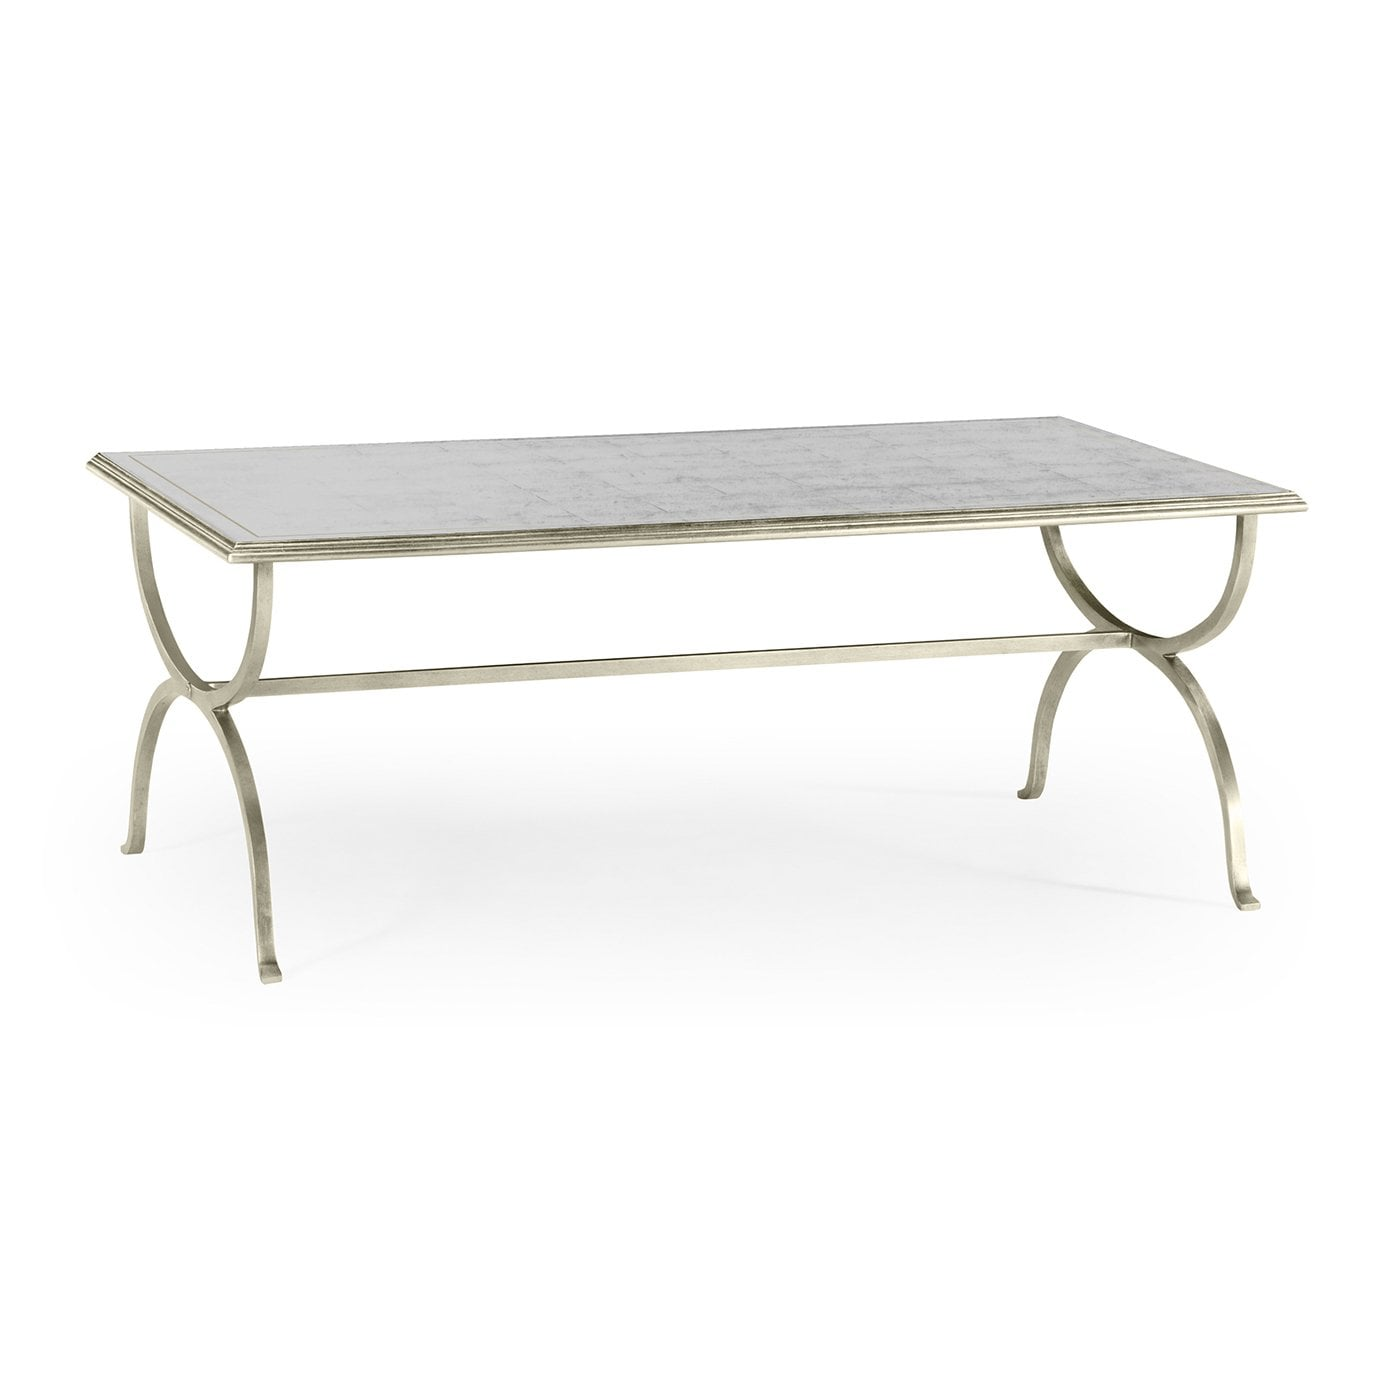 Designer Silver Mirrored Coffee Table Swanky Interiors